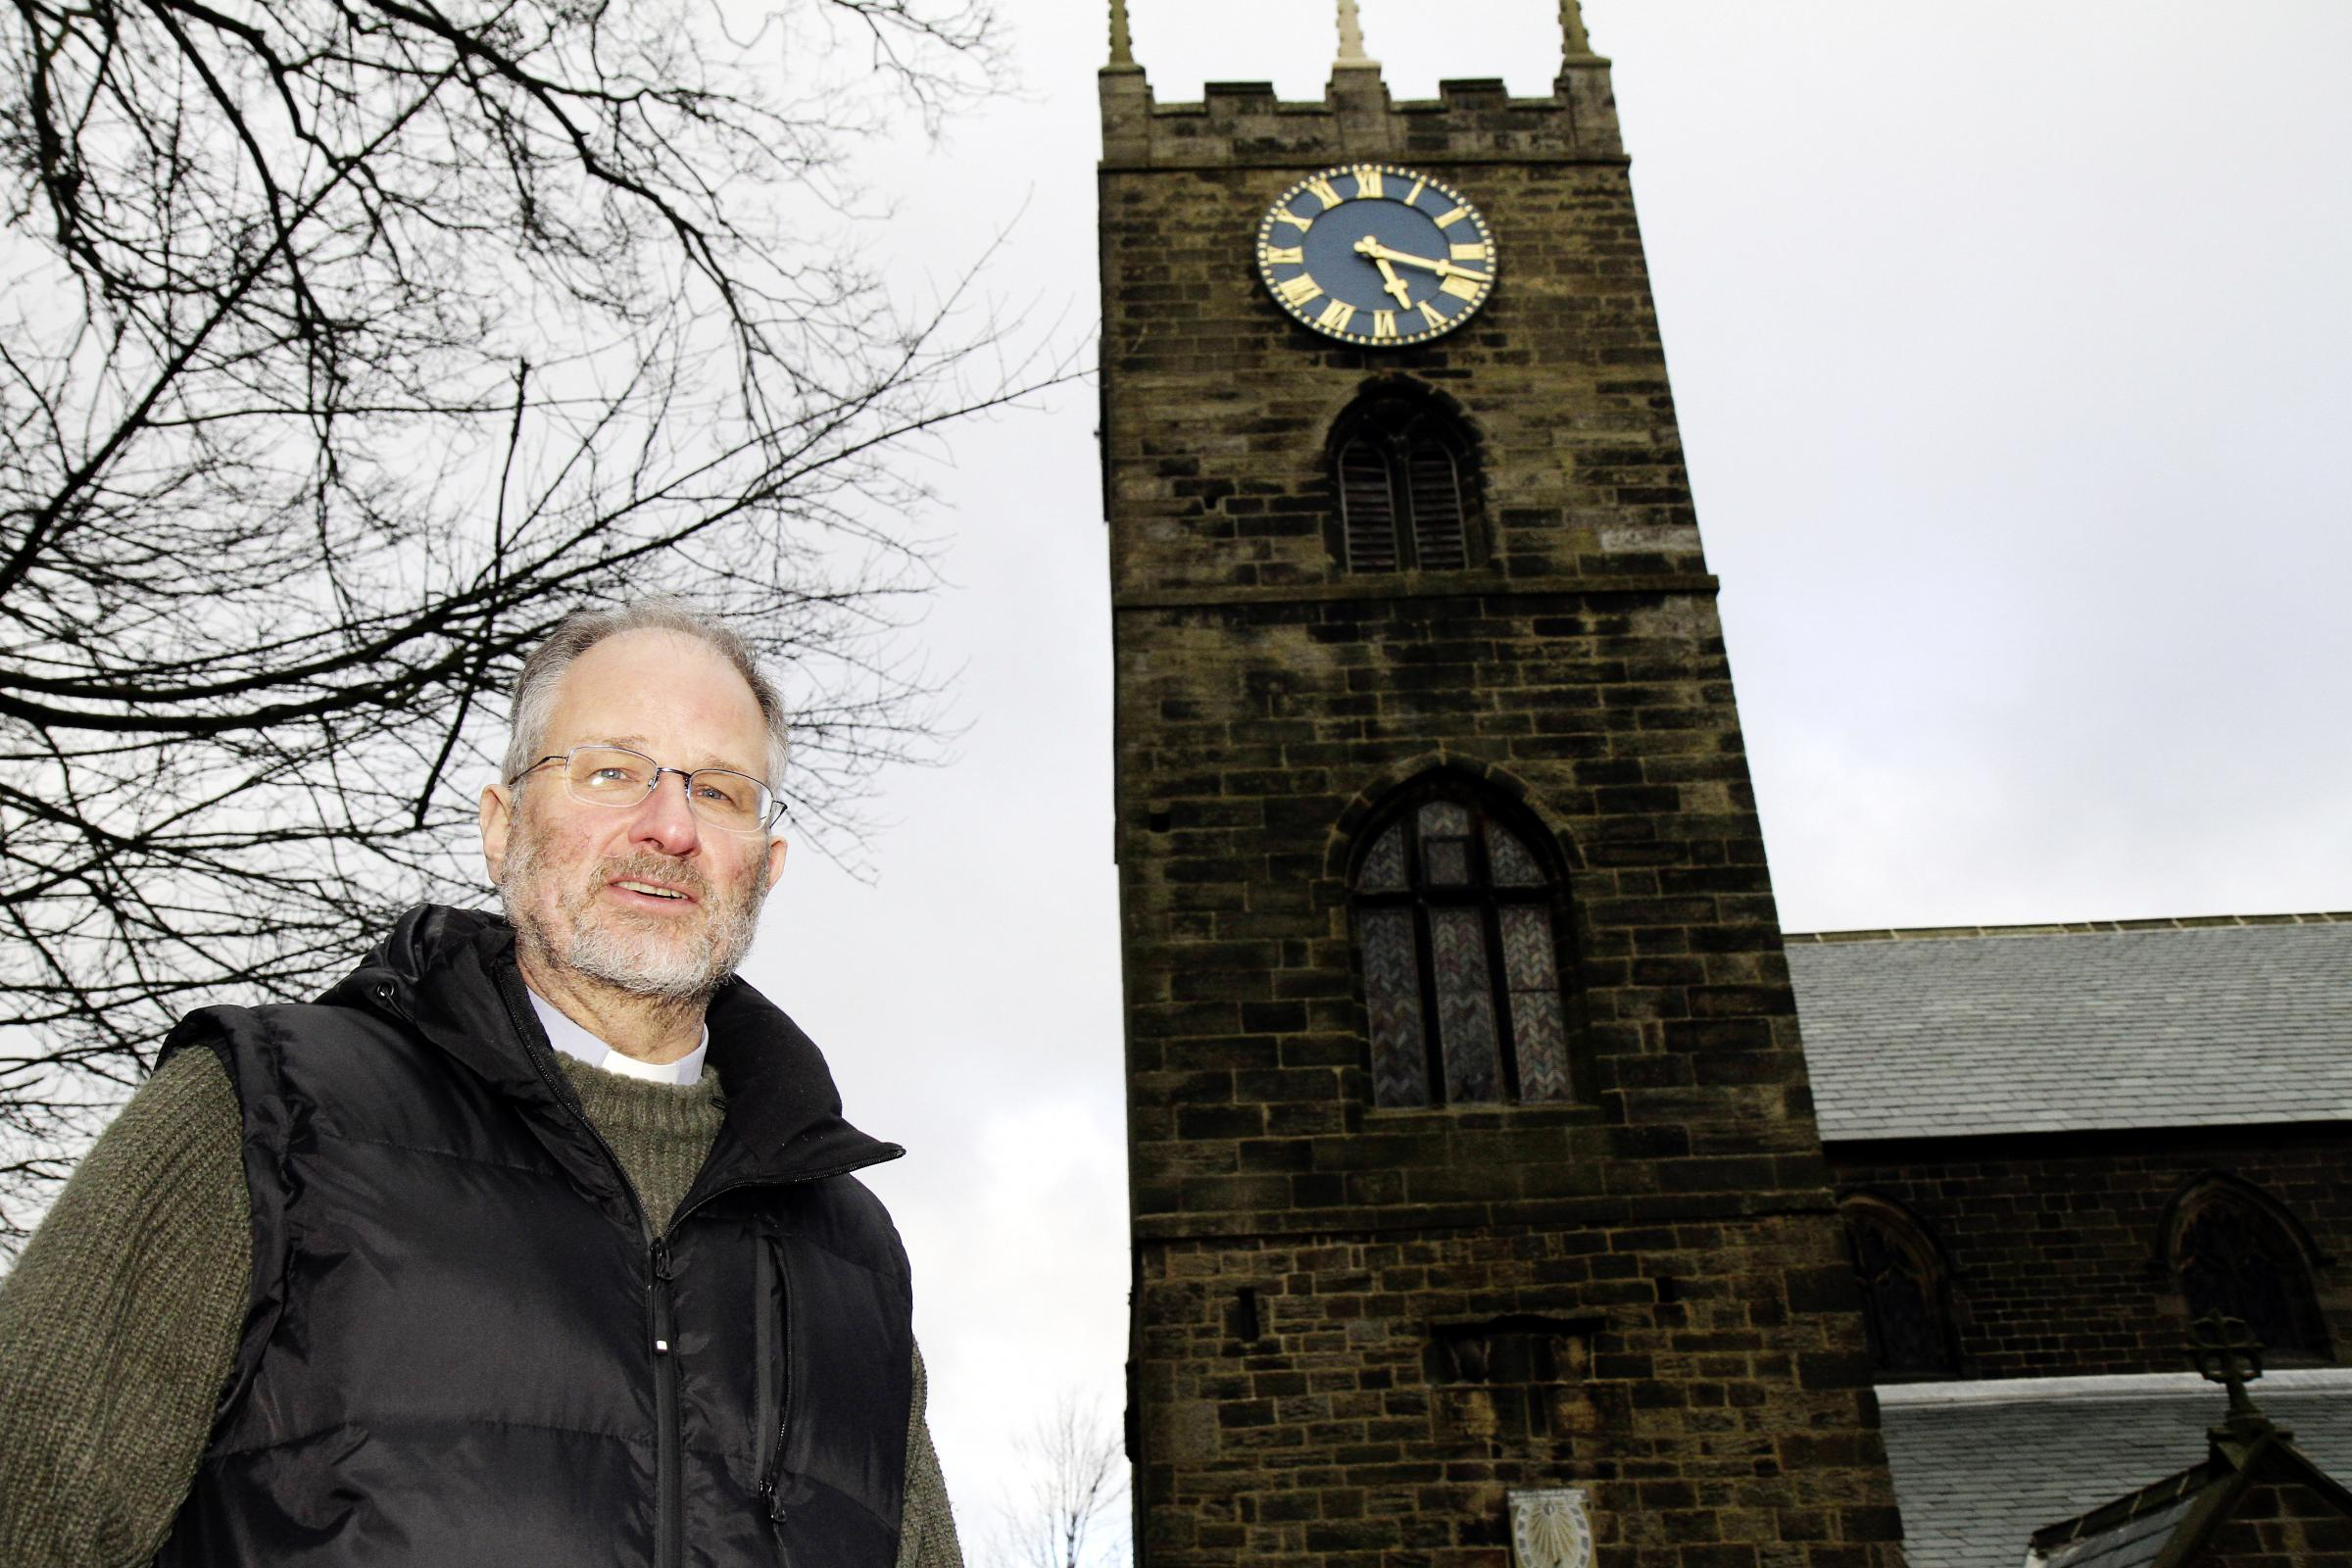 Reverend Peter Mayo-Smith of the newly formed United Benefice of Haworth and Cross Roads